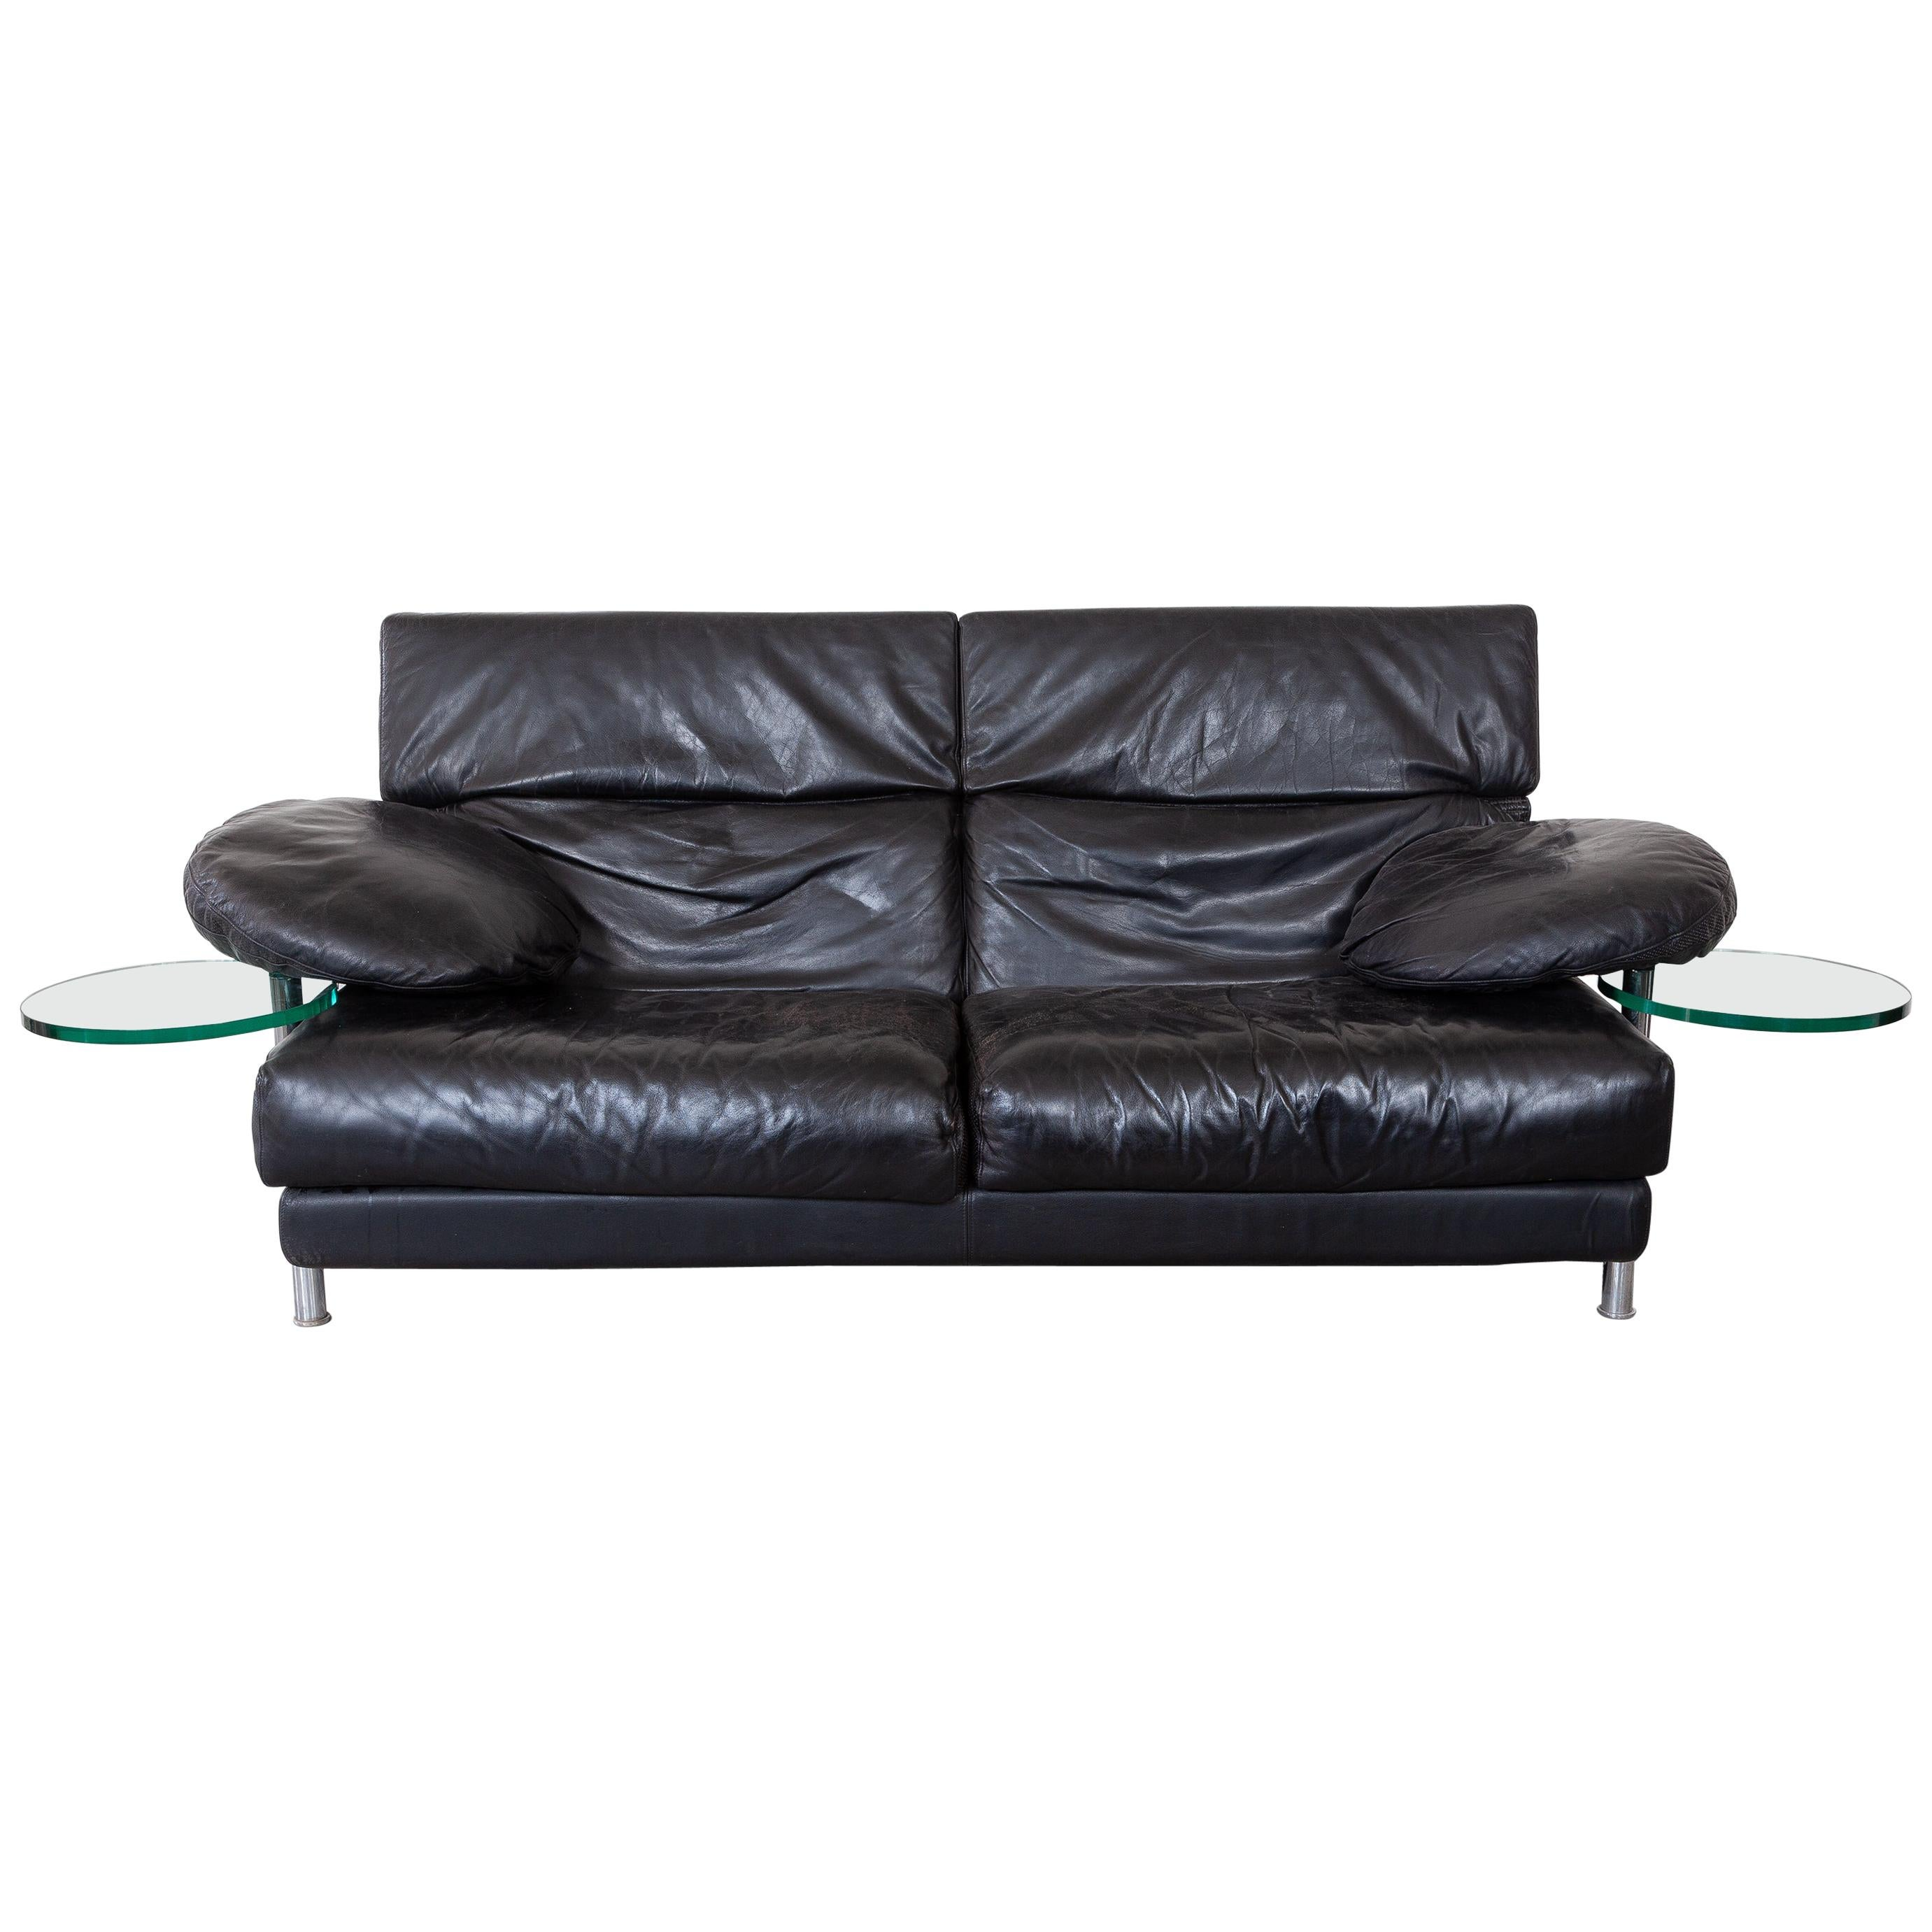 """B&B Italy Black Leather 1980s Sofa Designed by Paolo Piva """"Model ARCA"""""""